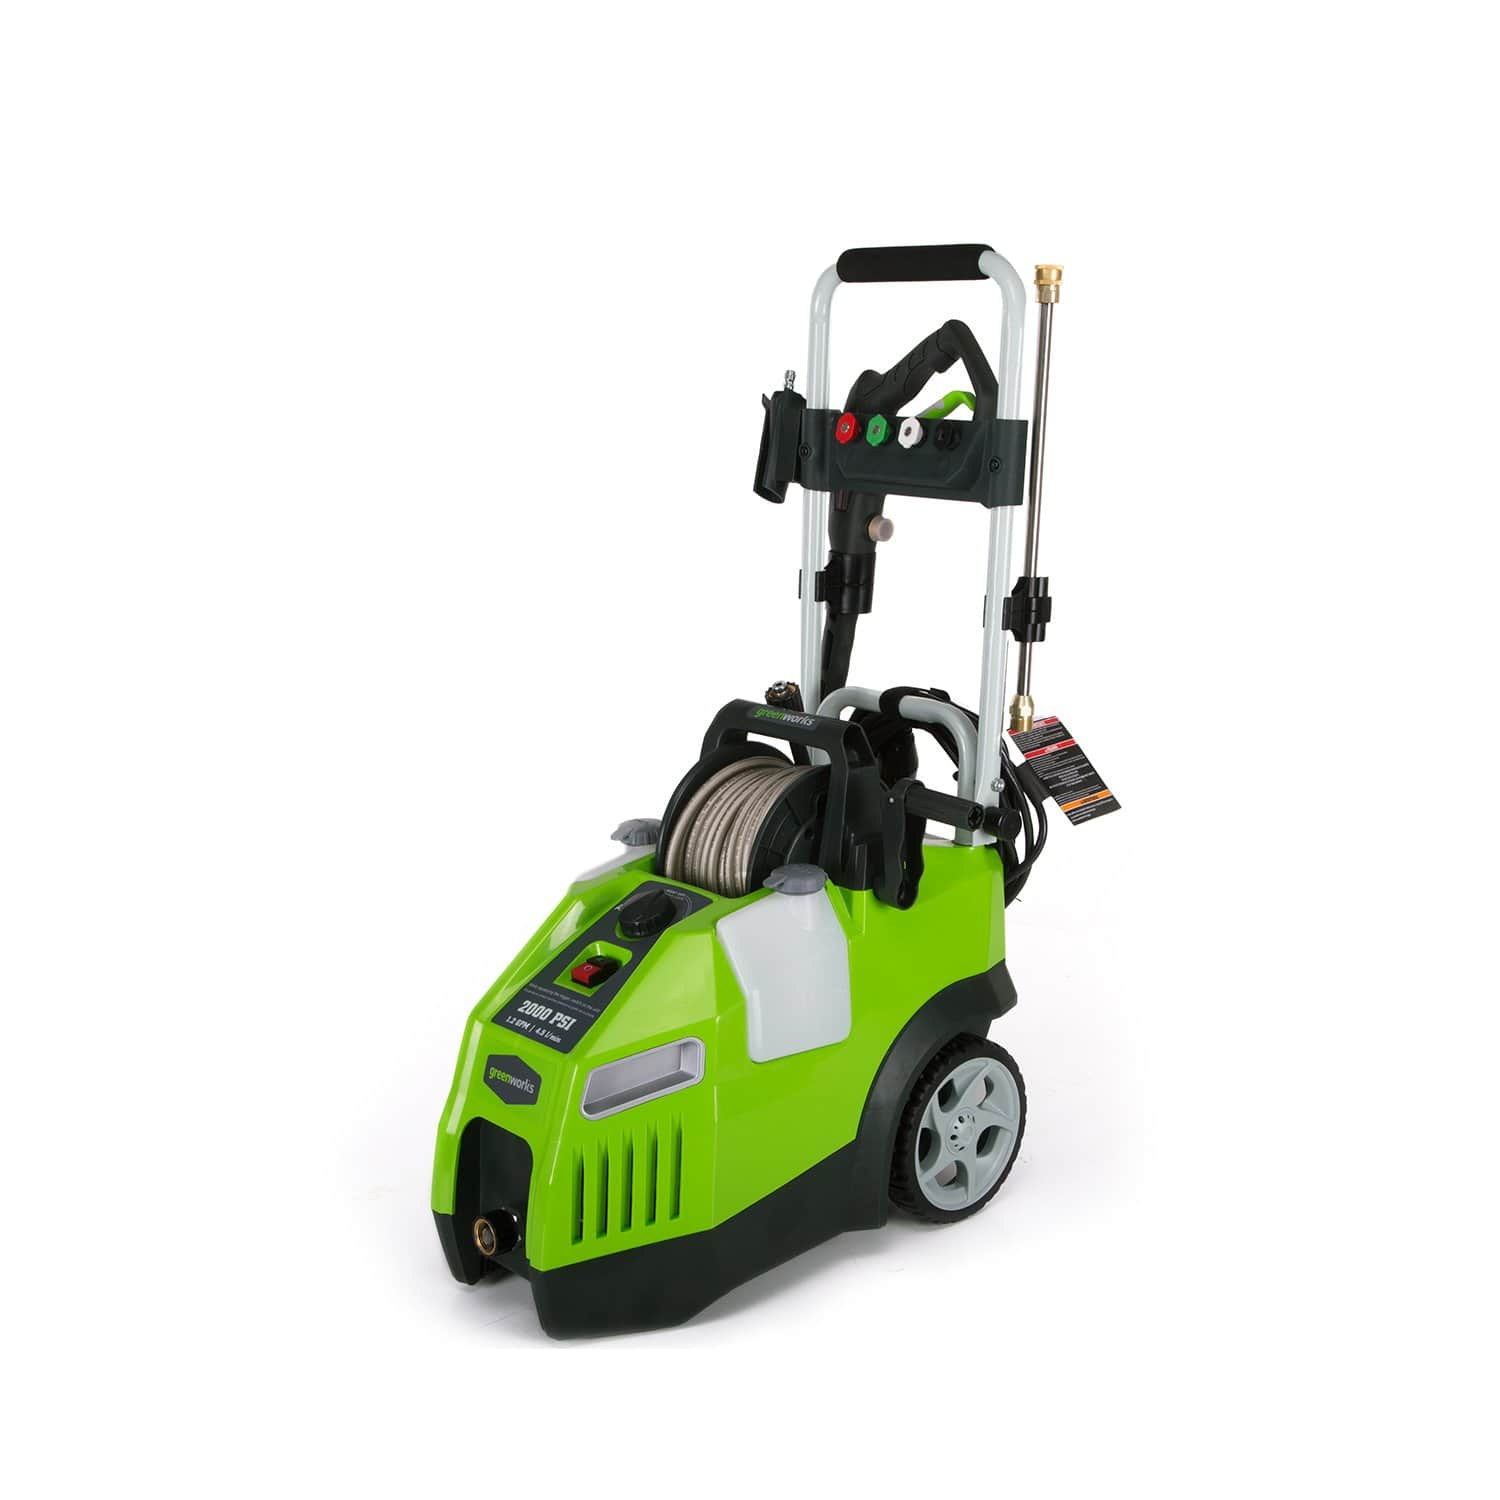 Greenworks 13-Amp 2000 PSI 1.2 GPM Electric Pressure Washer w/ Hose Reel $84.64 + Free Shipping ~ Amazon